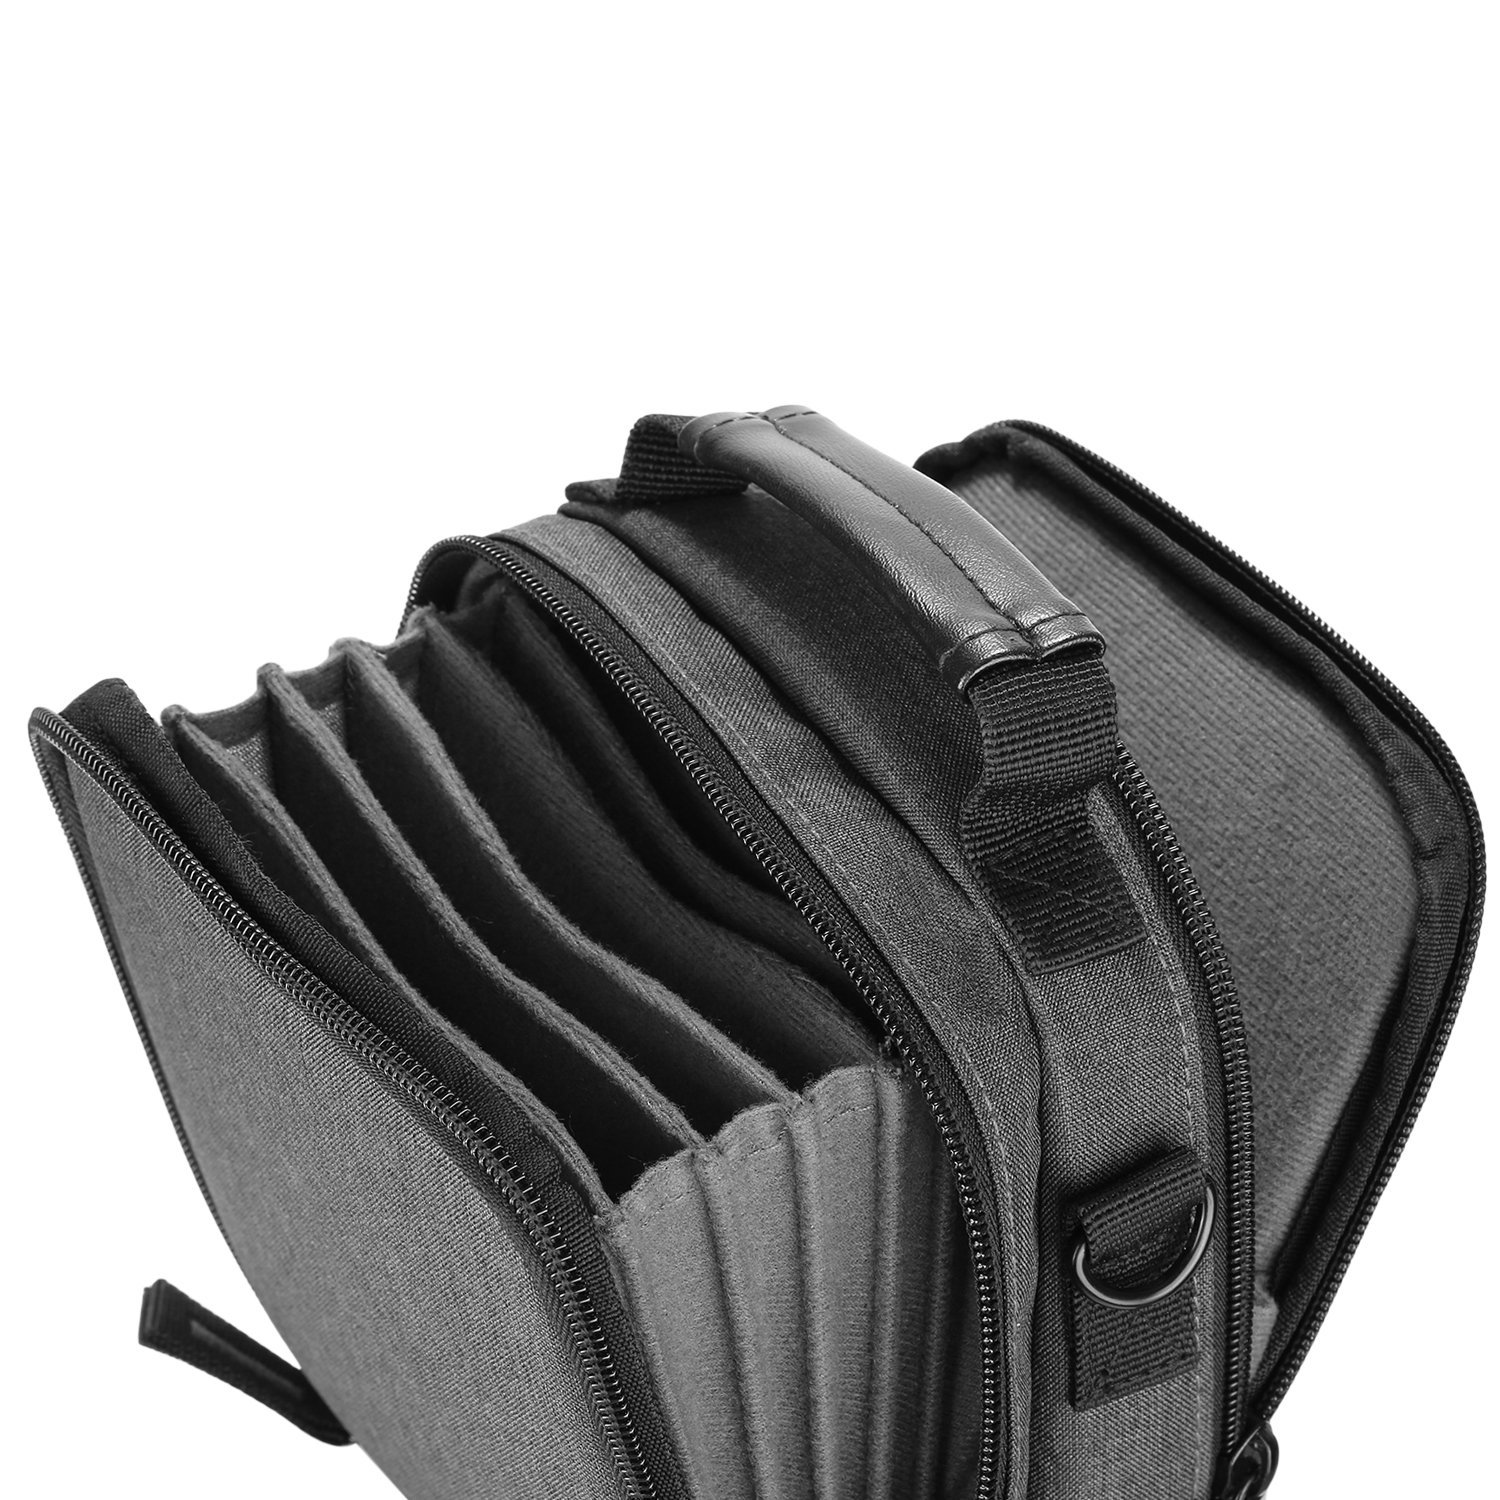 Neewer Camera Lens Filter Pouch Case with Shoulder Strap, Made of Solid Canvas for 6 Piece 100x100mm or 100x150mm Square or Rectangular Filters by Neewer